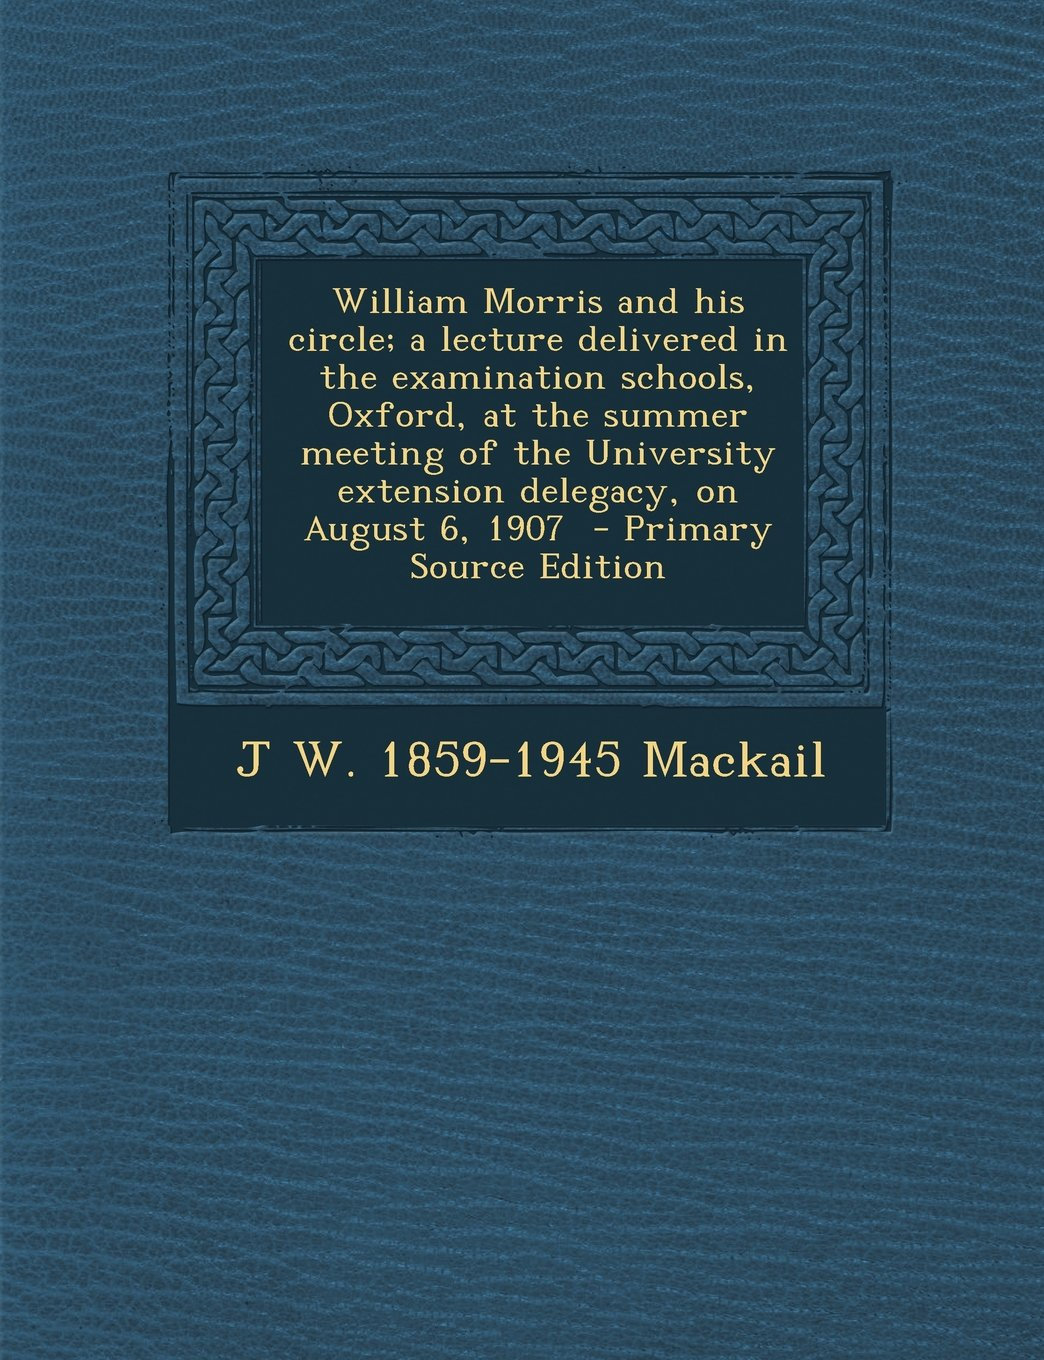 Read Online William Morris and his circle; a lecture delivered in the examination schools, Oxford, at the summer meeting of the University extension delegacy, on August 6, 1907  - Primary Source Edition pdf